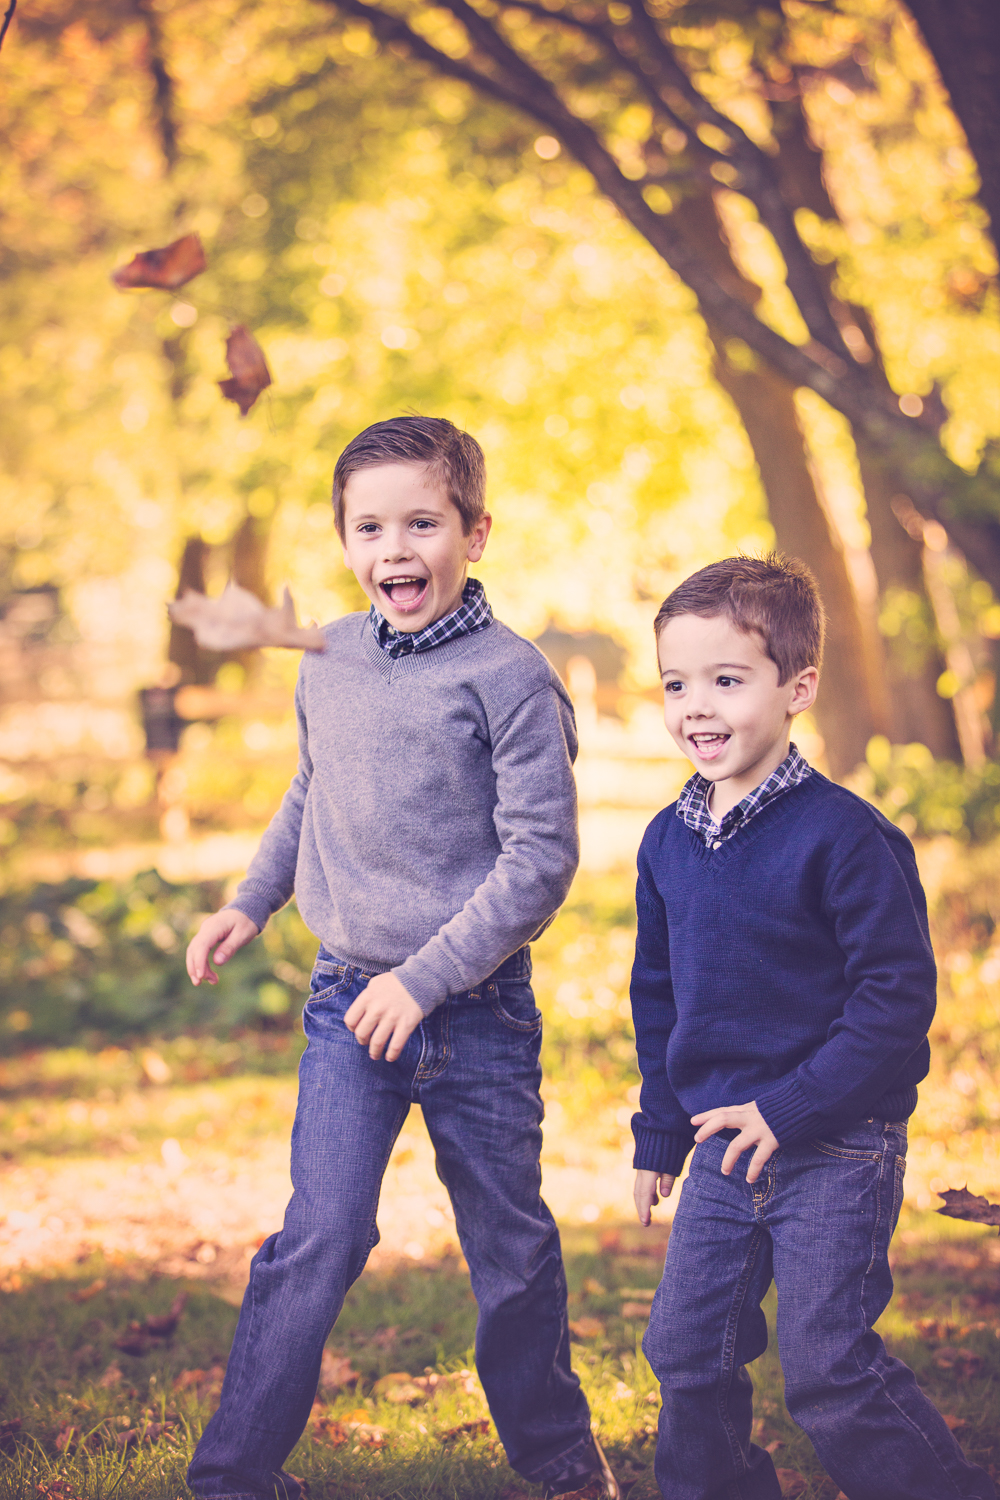 Fall photo of two brothers with autumn leaves